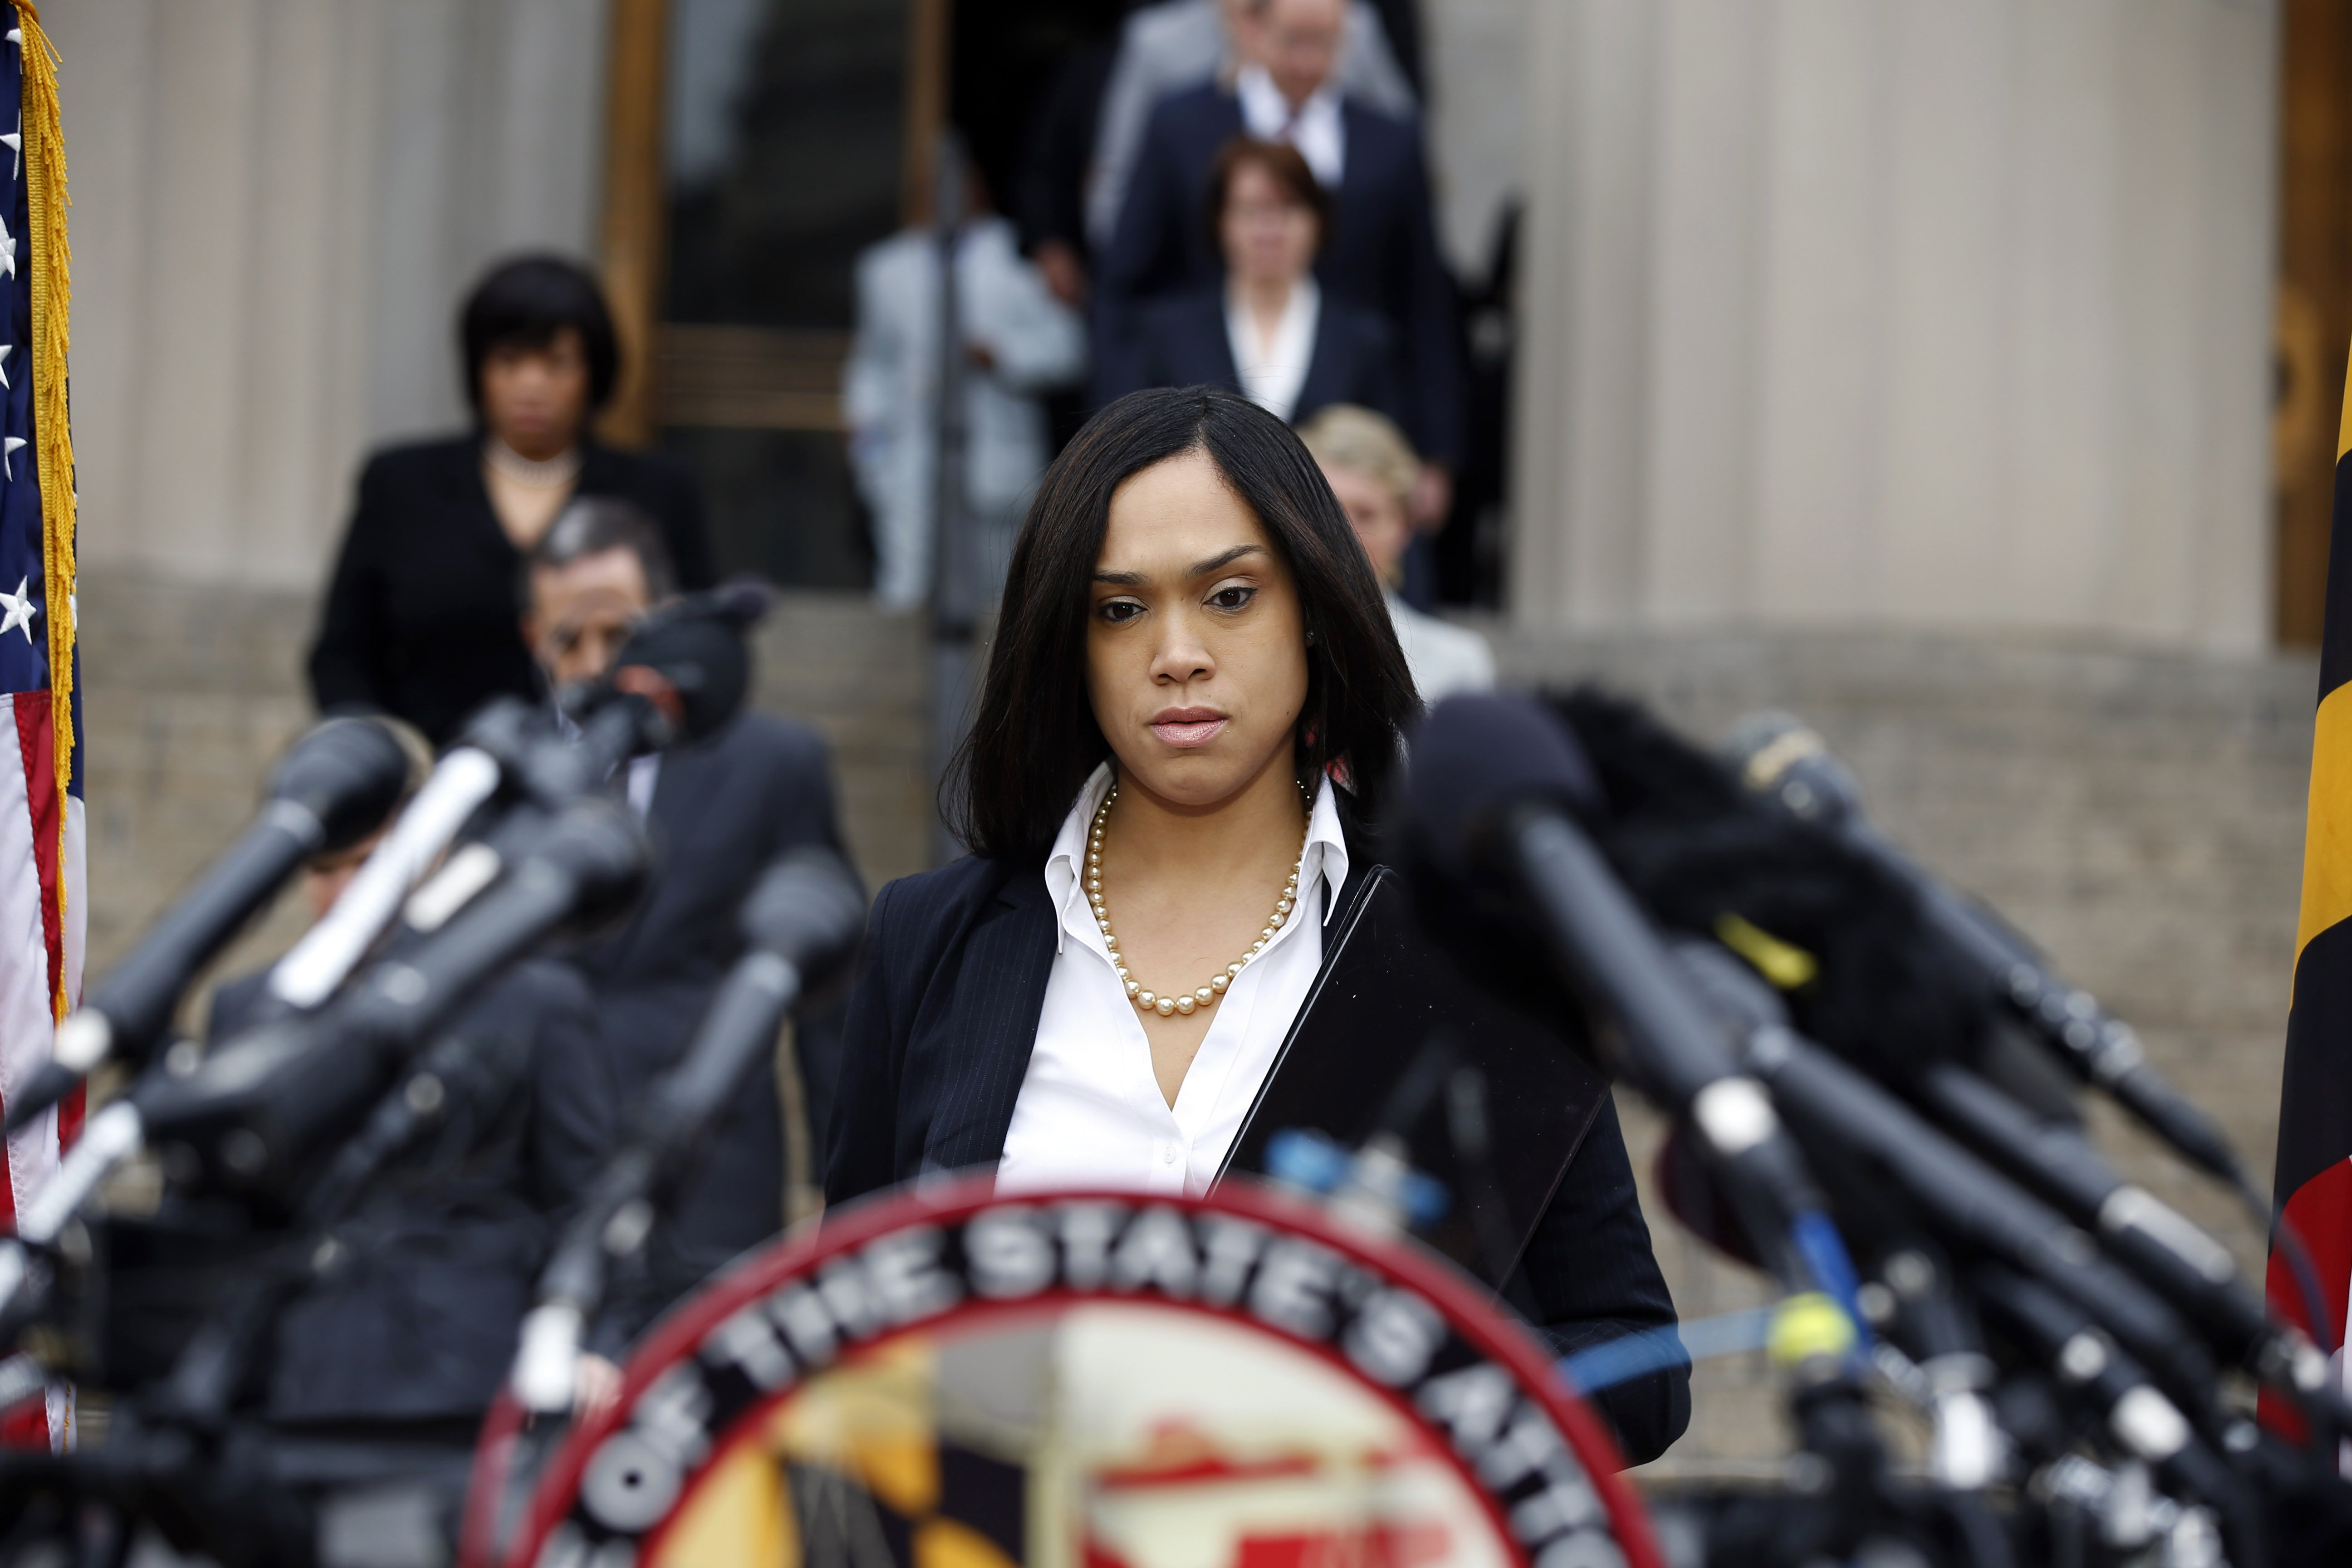 Marilyn Mosby, Baltimore state's attorney, approaches the podium for a media availability on  May 1, 2015 in Baltimore.